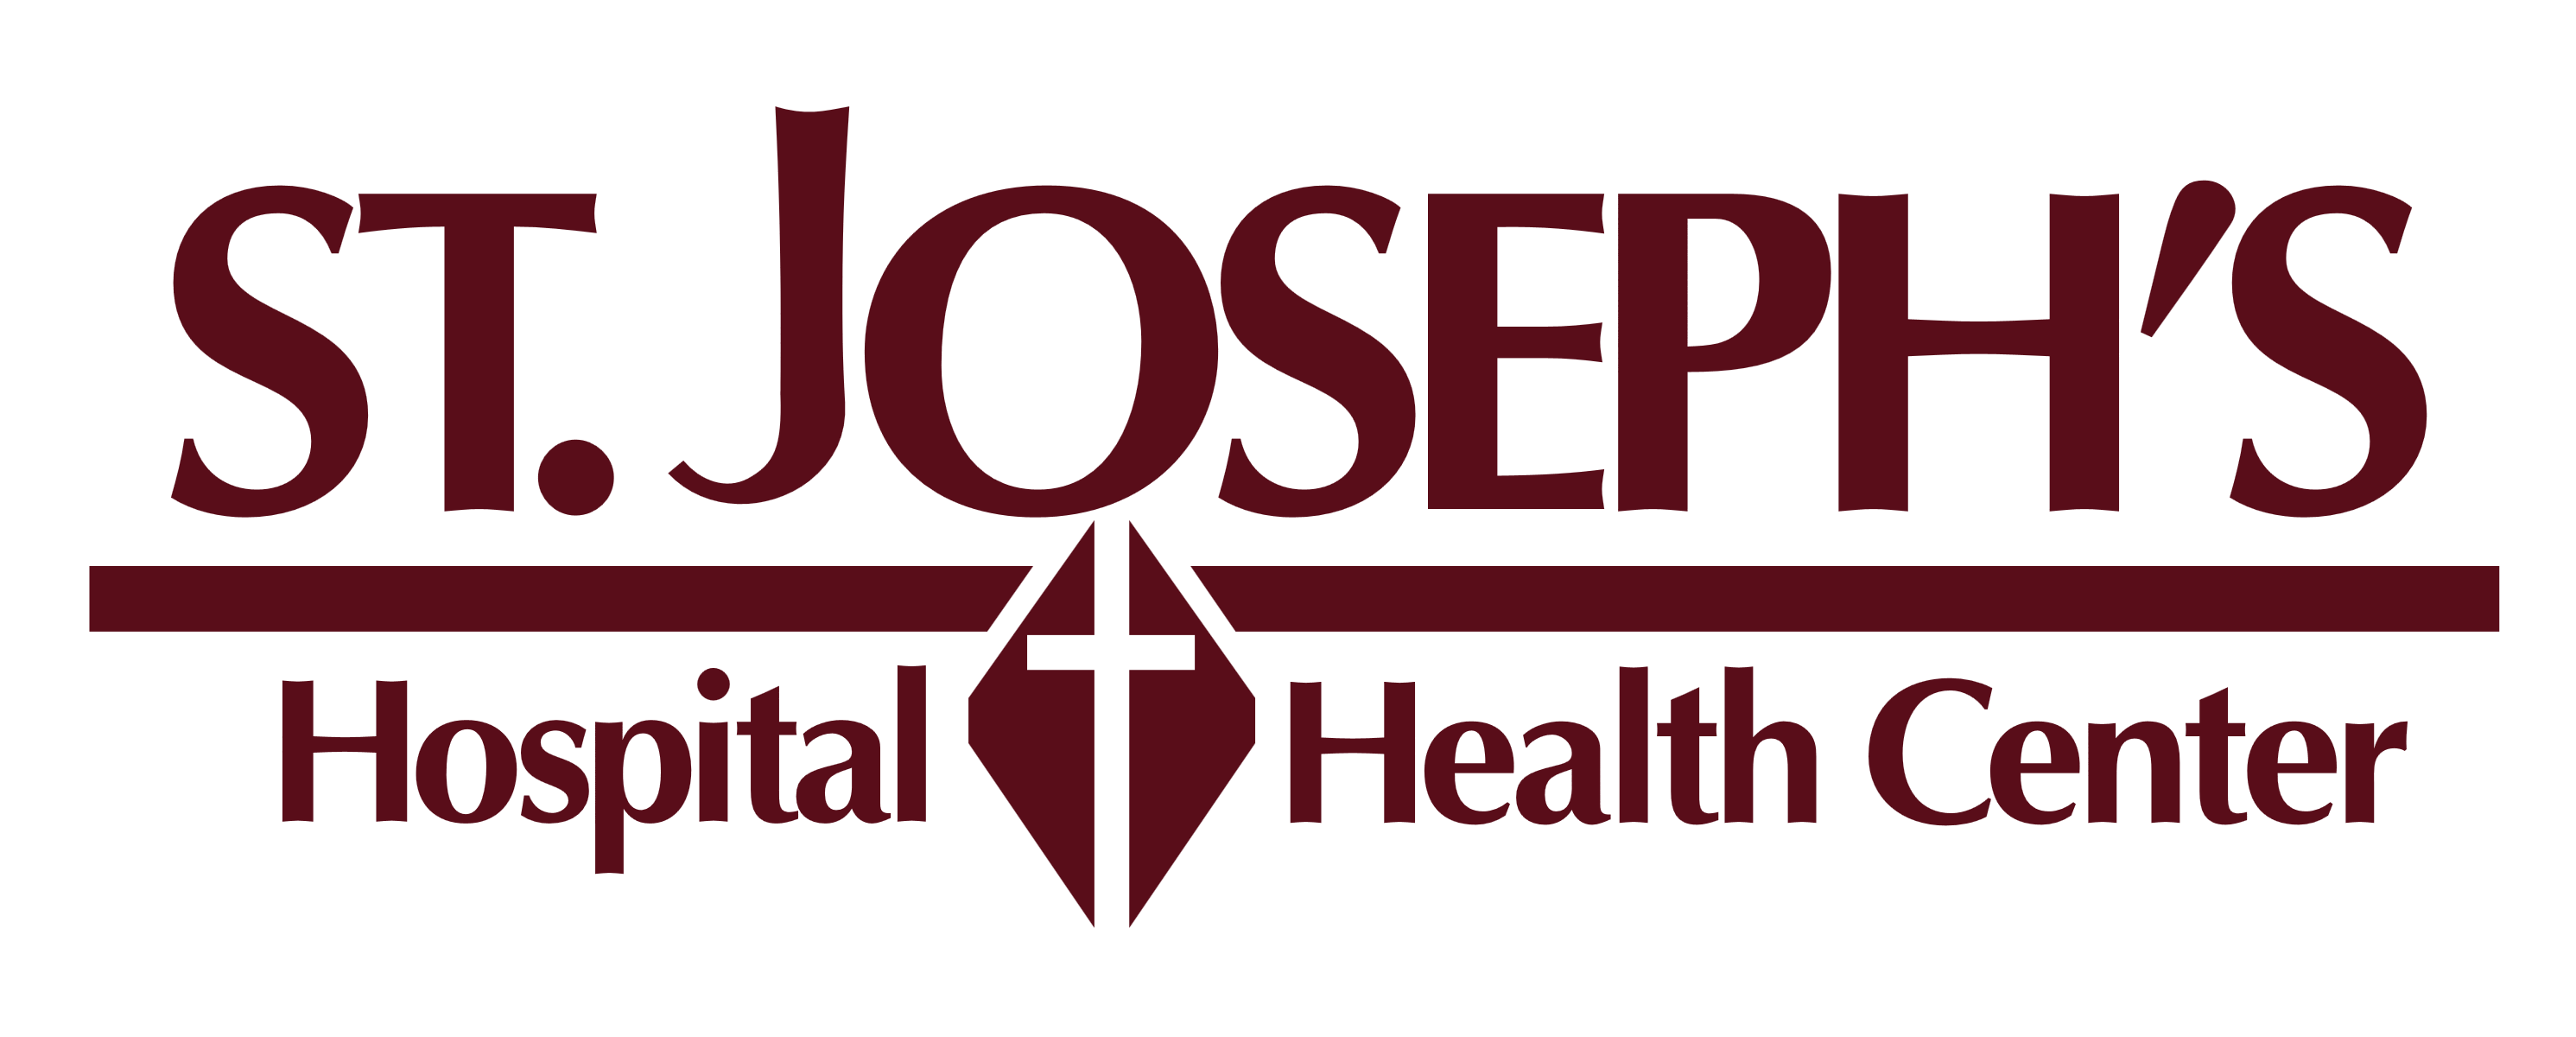 St Joseph S Hospital Health Center Logos Download